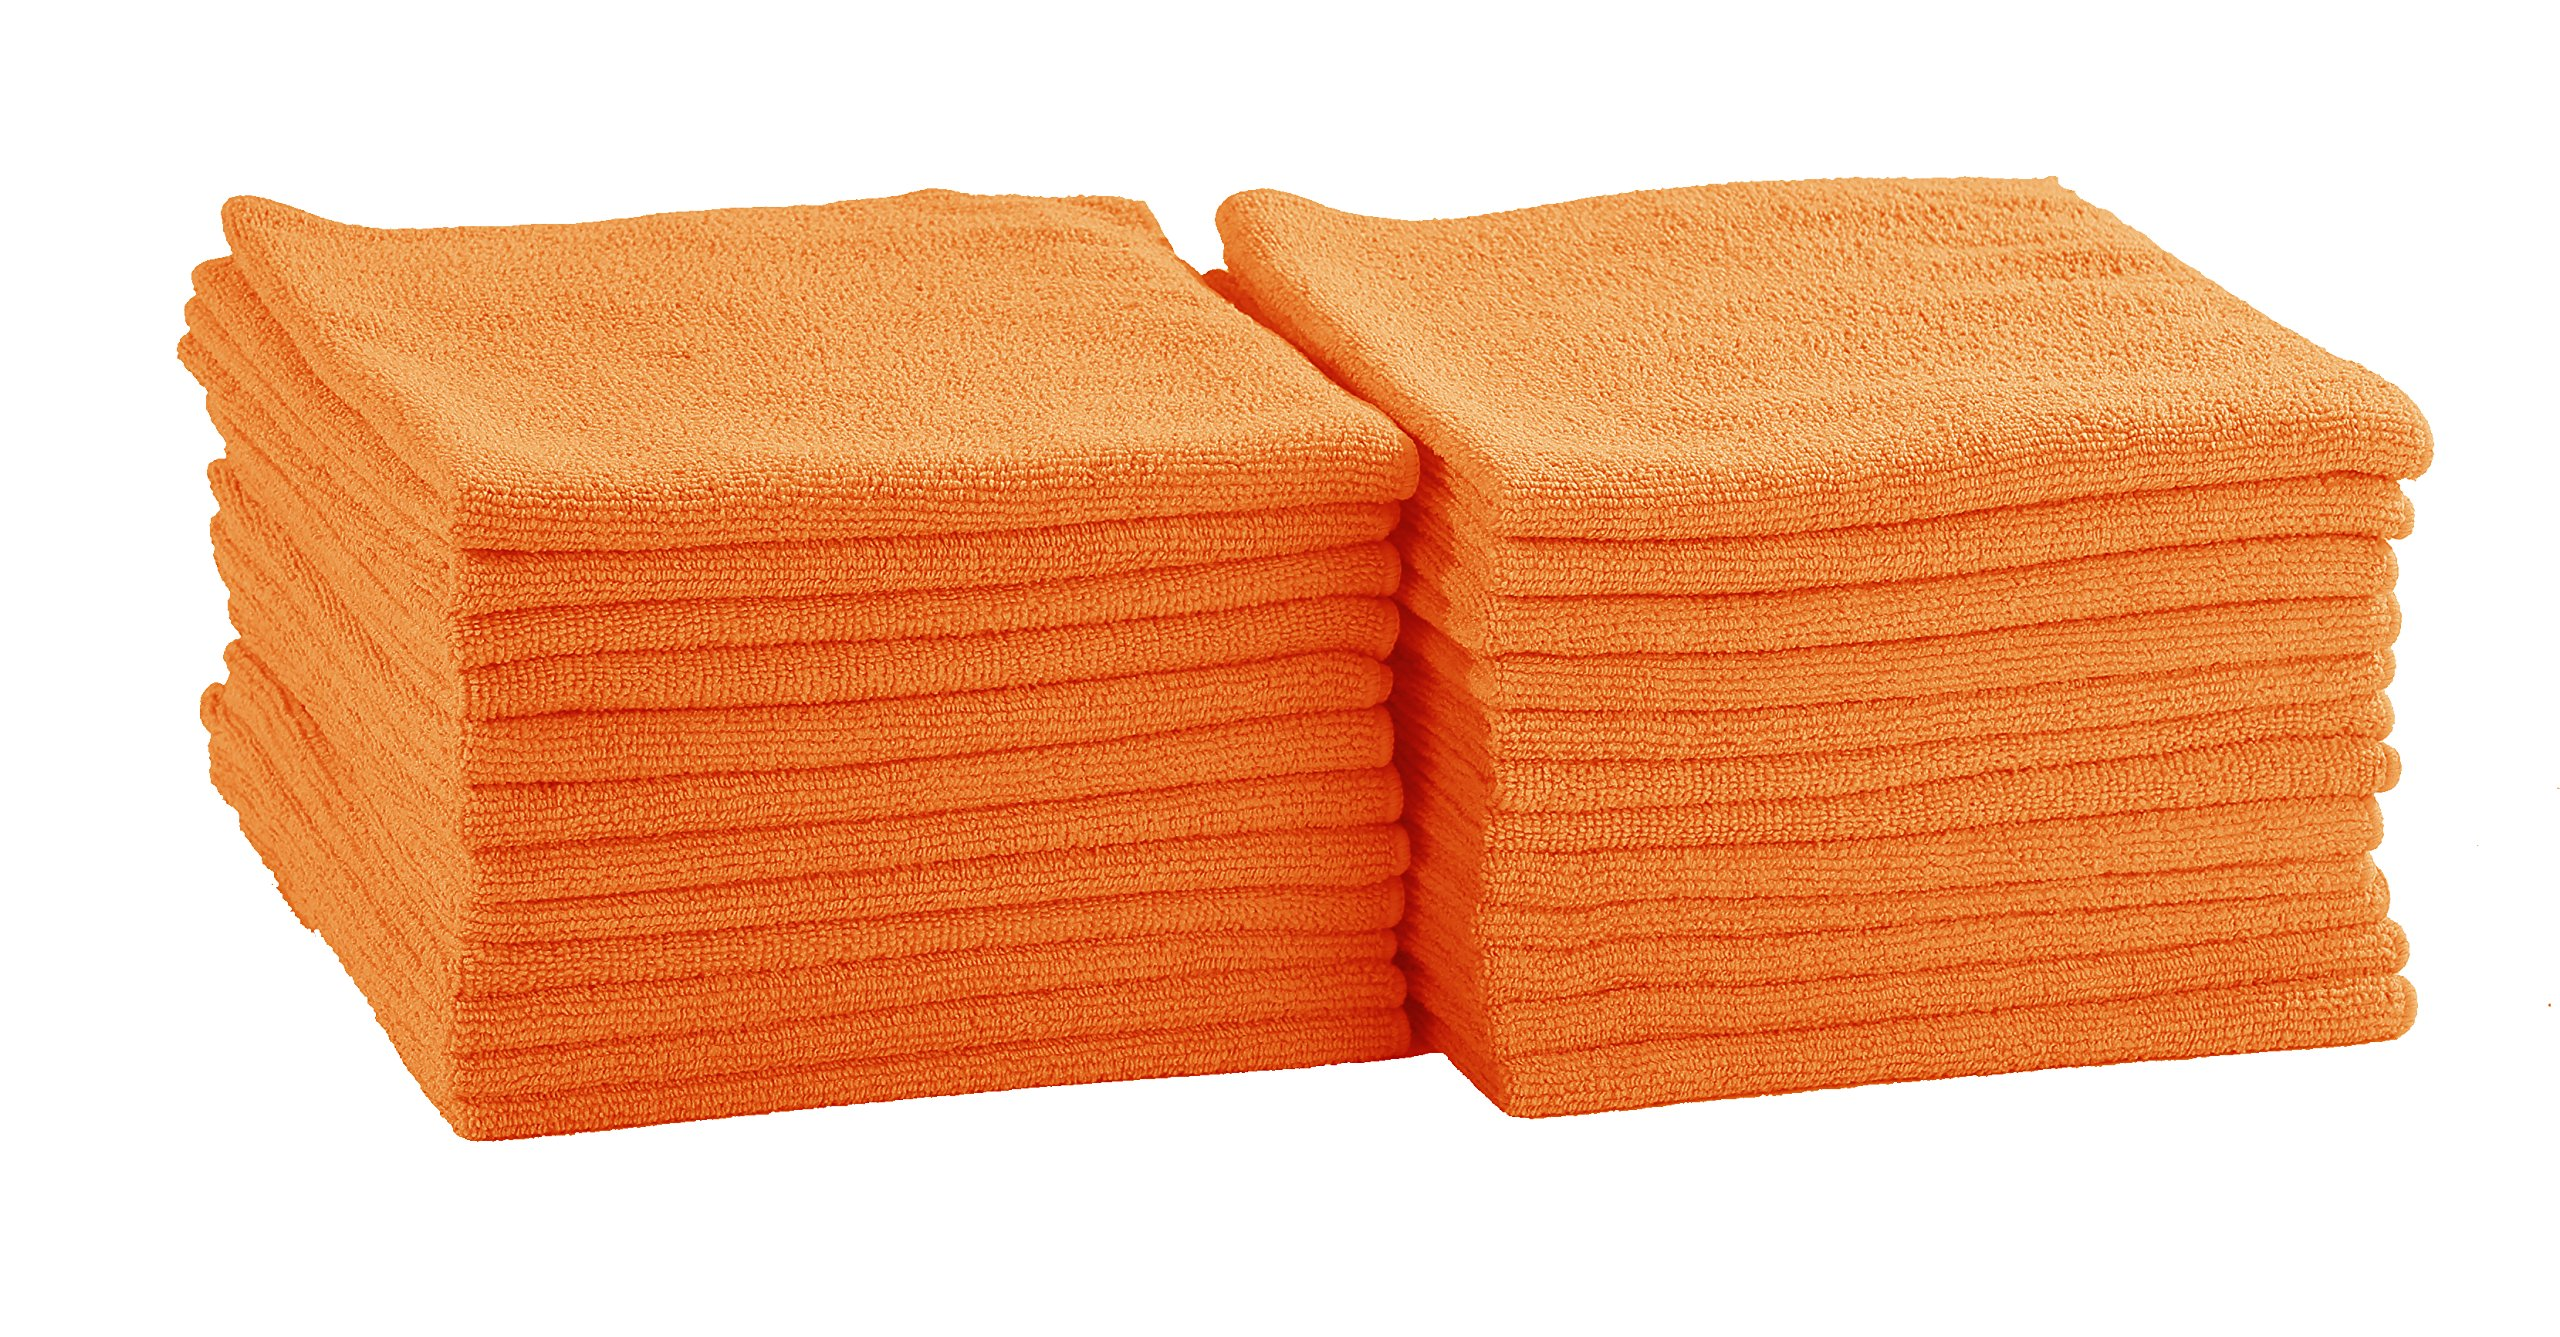 DRI Professional Extra-Thick Microfiber Cleaning Cloth 48 Pack Orange by DRI (Image #1)